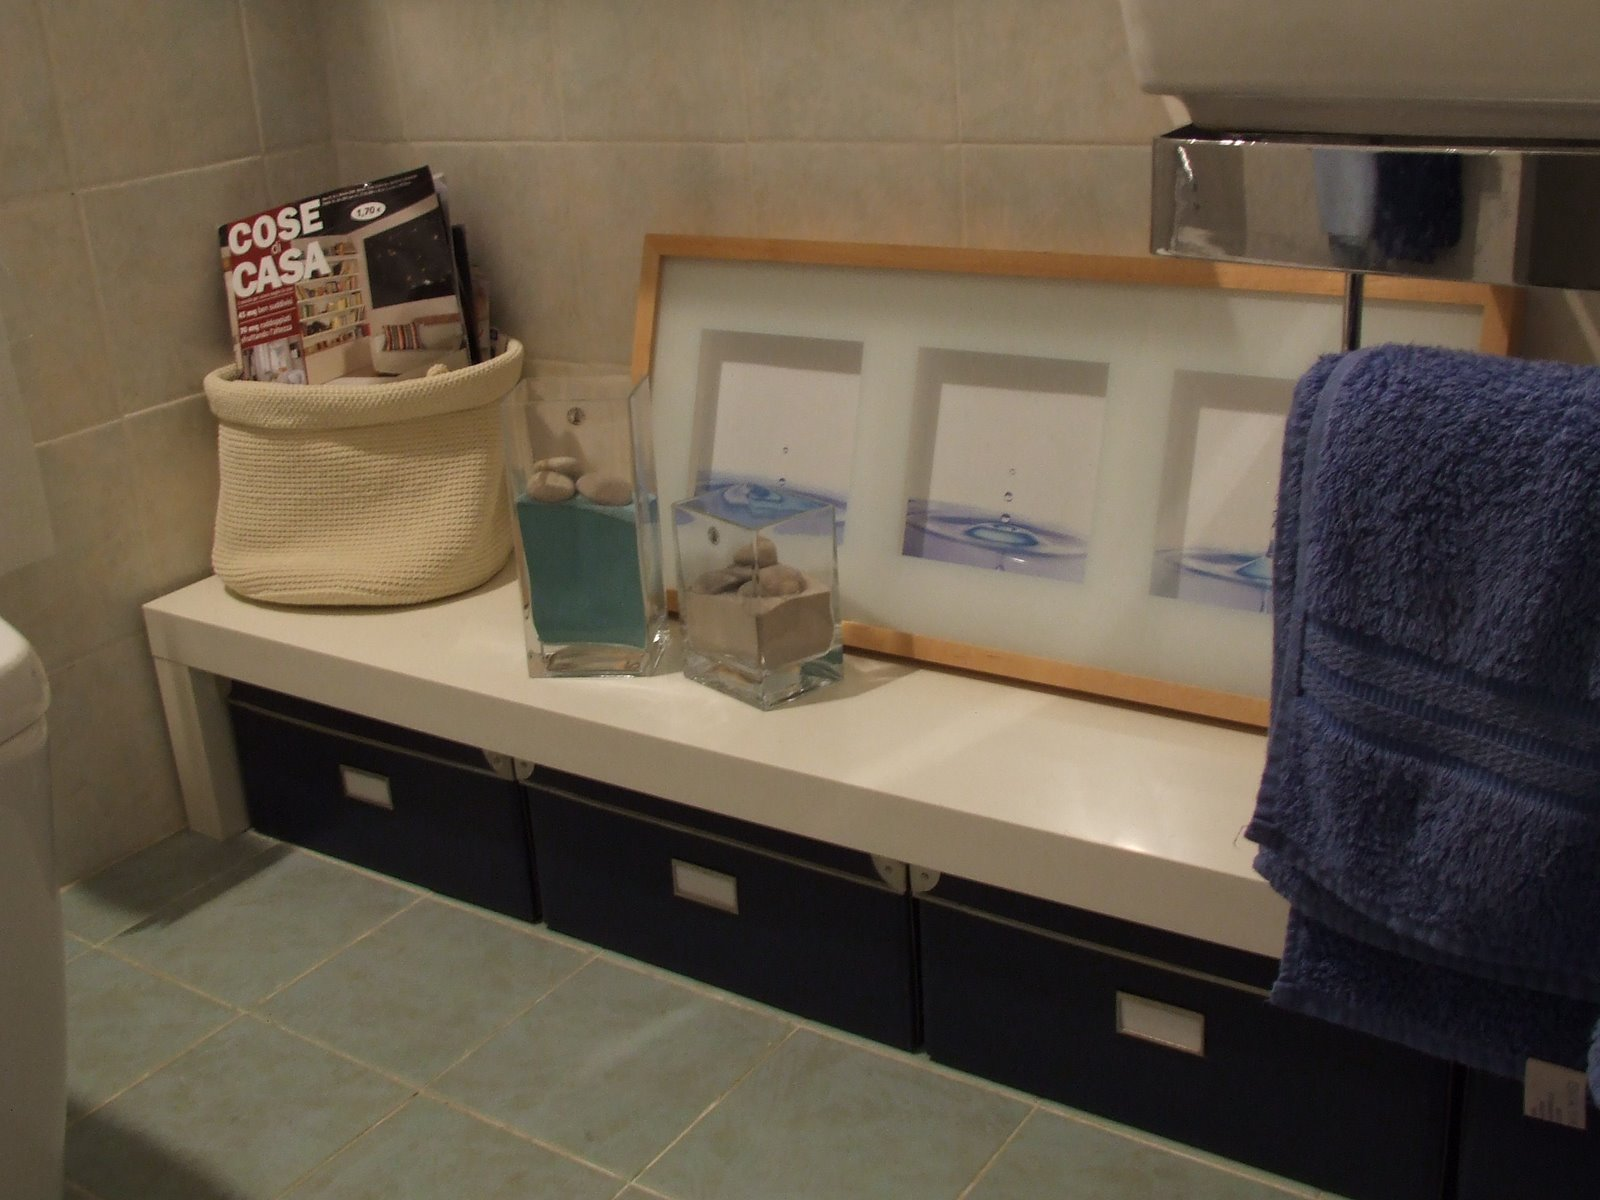 Bathroom Bench looking for a low bathroom bench? here's one to hack. - ikea